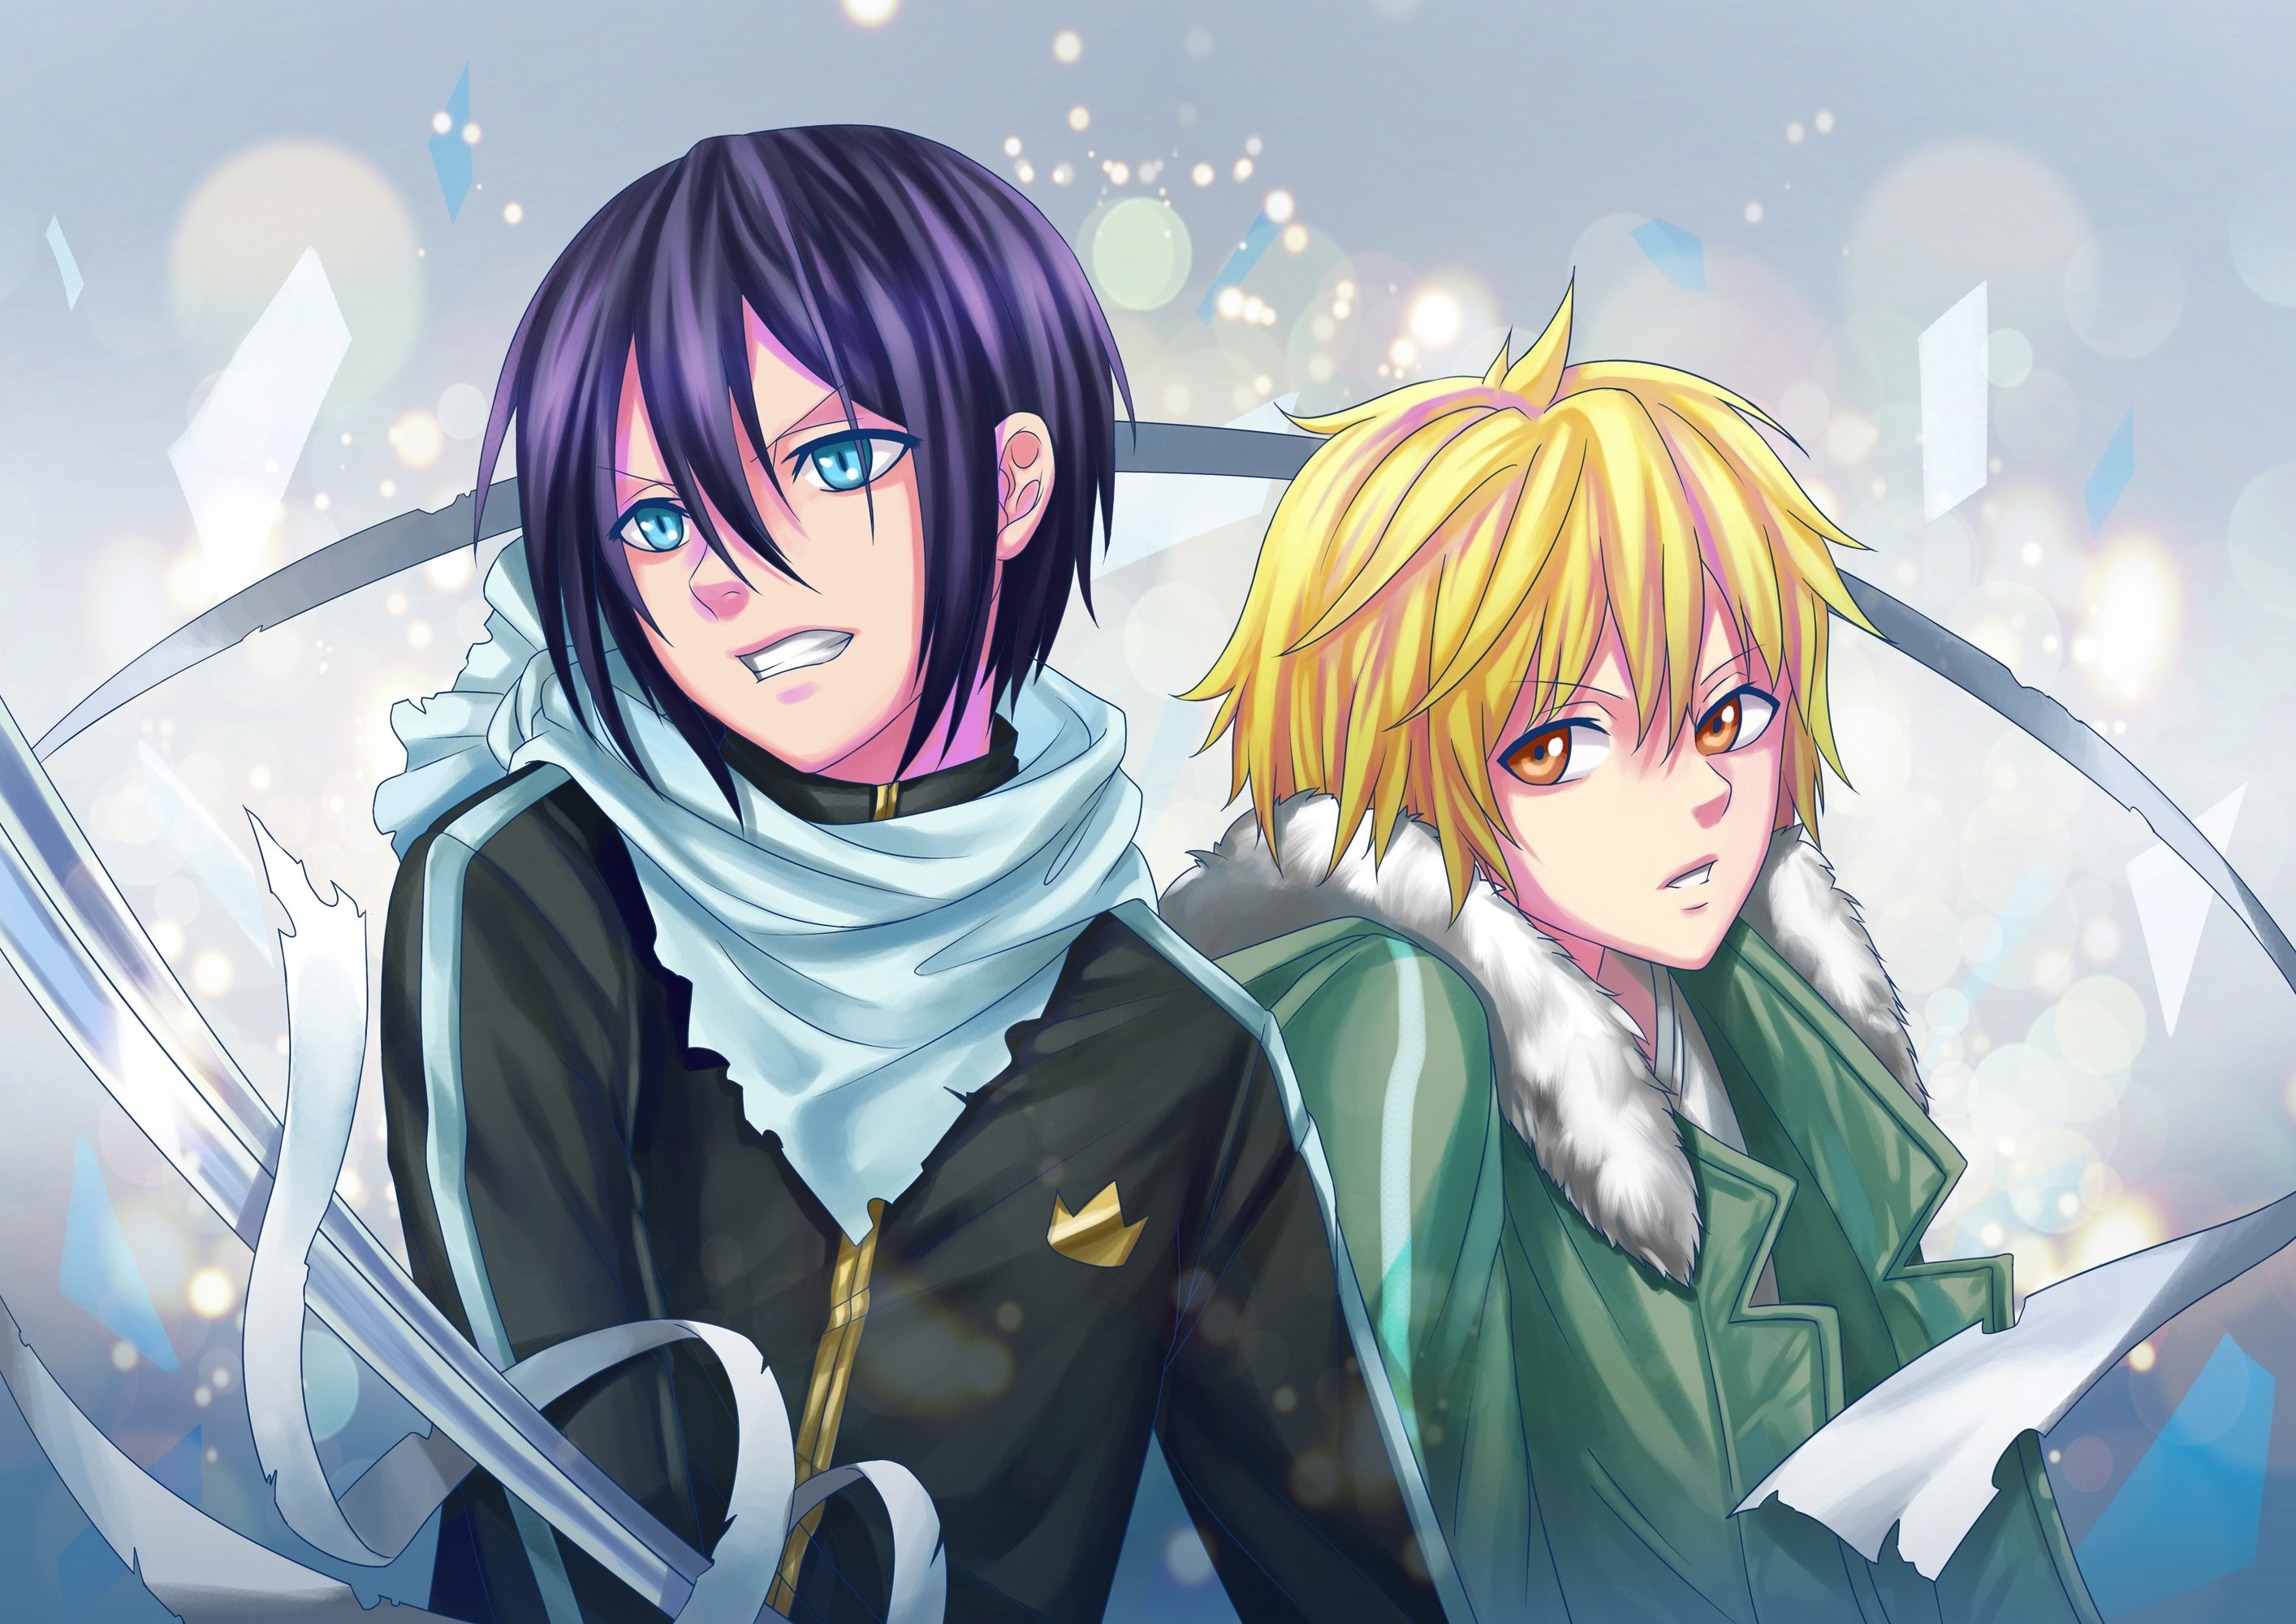 Hd Noragami Wallpaper 81 Images